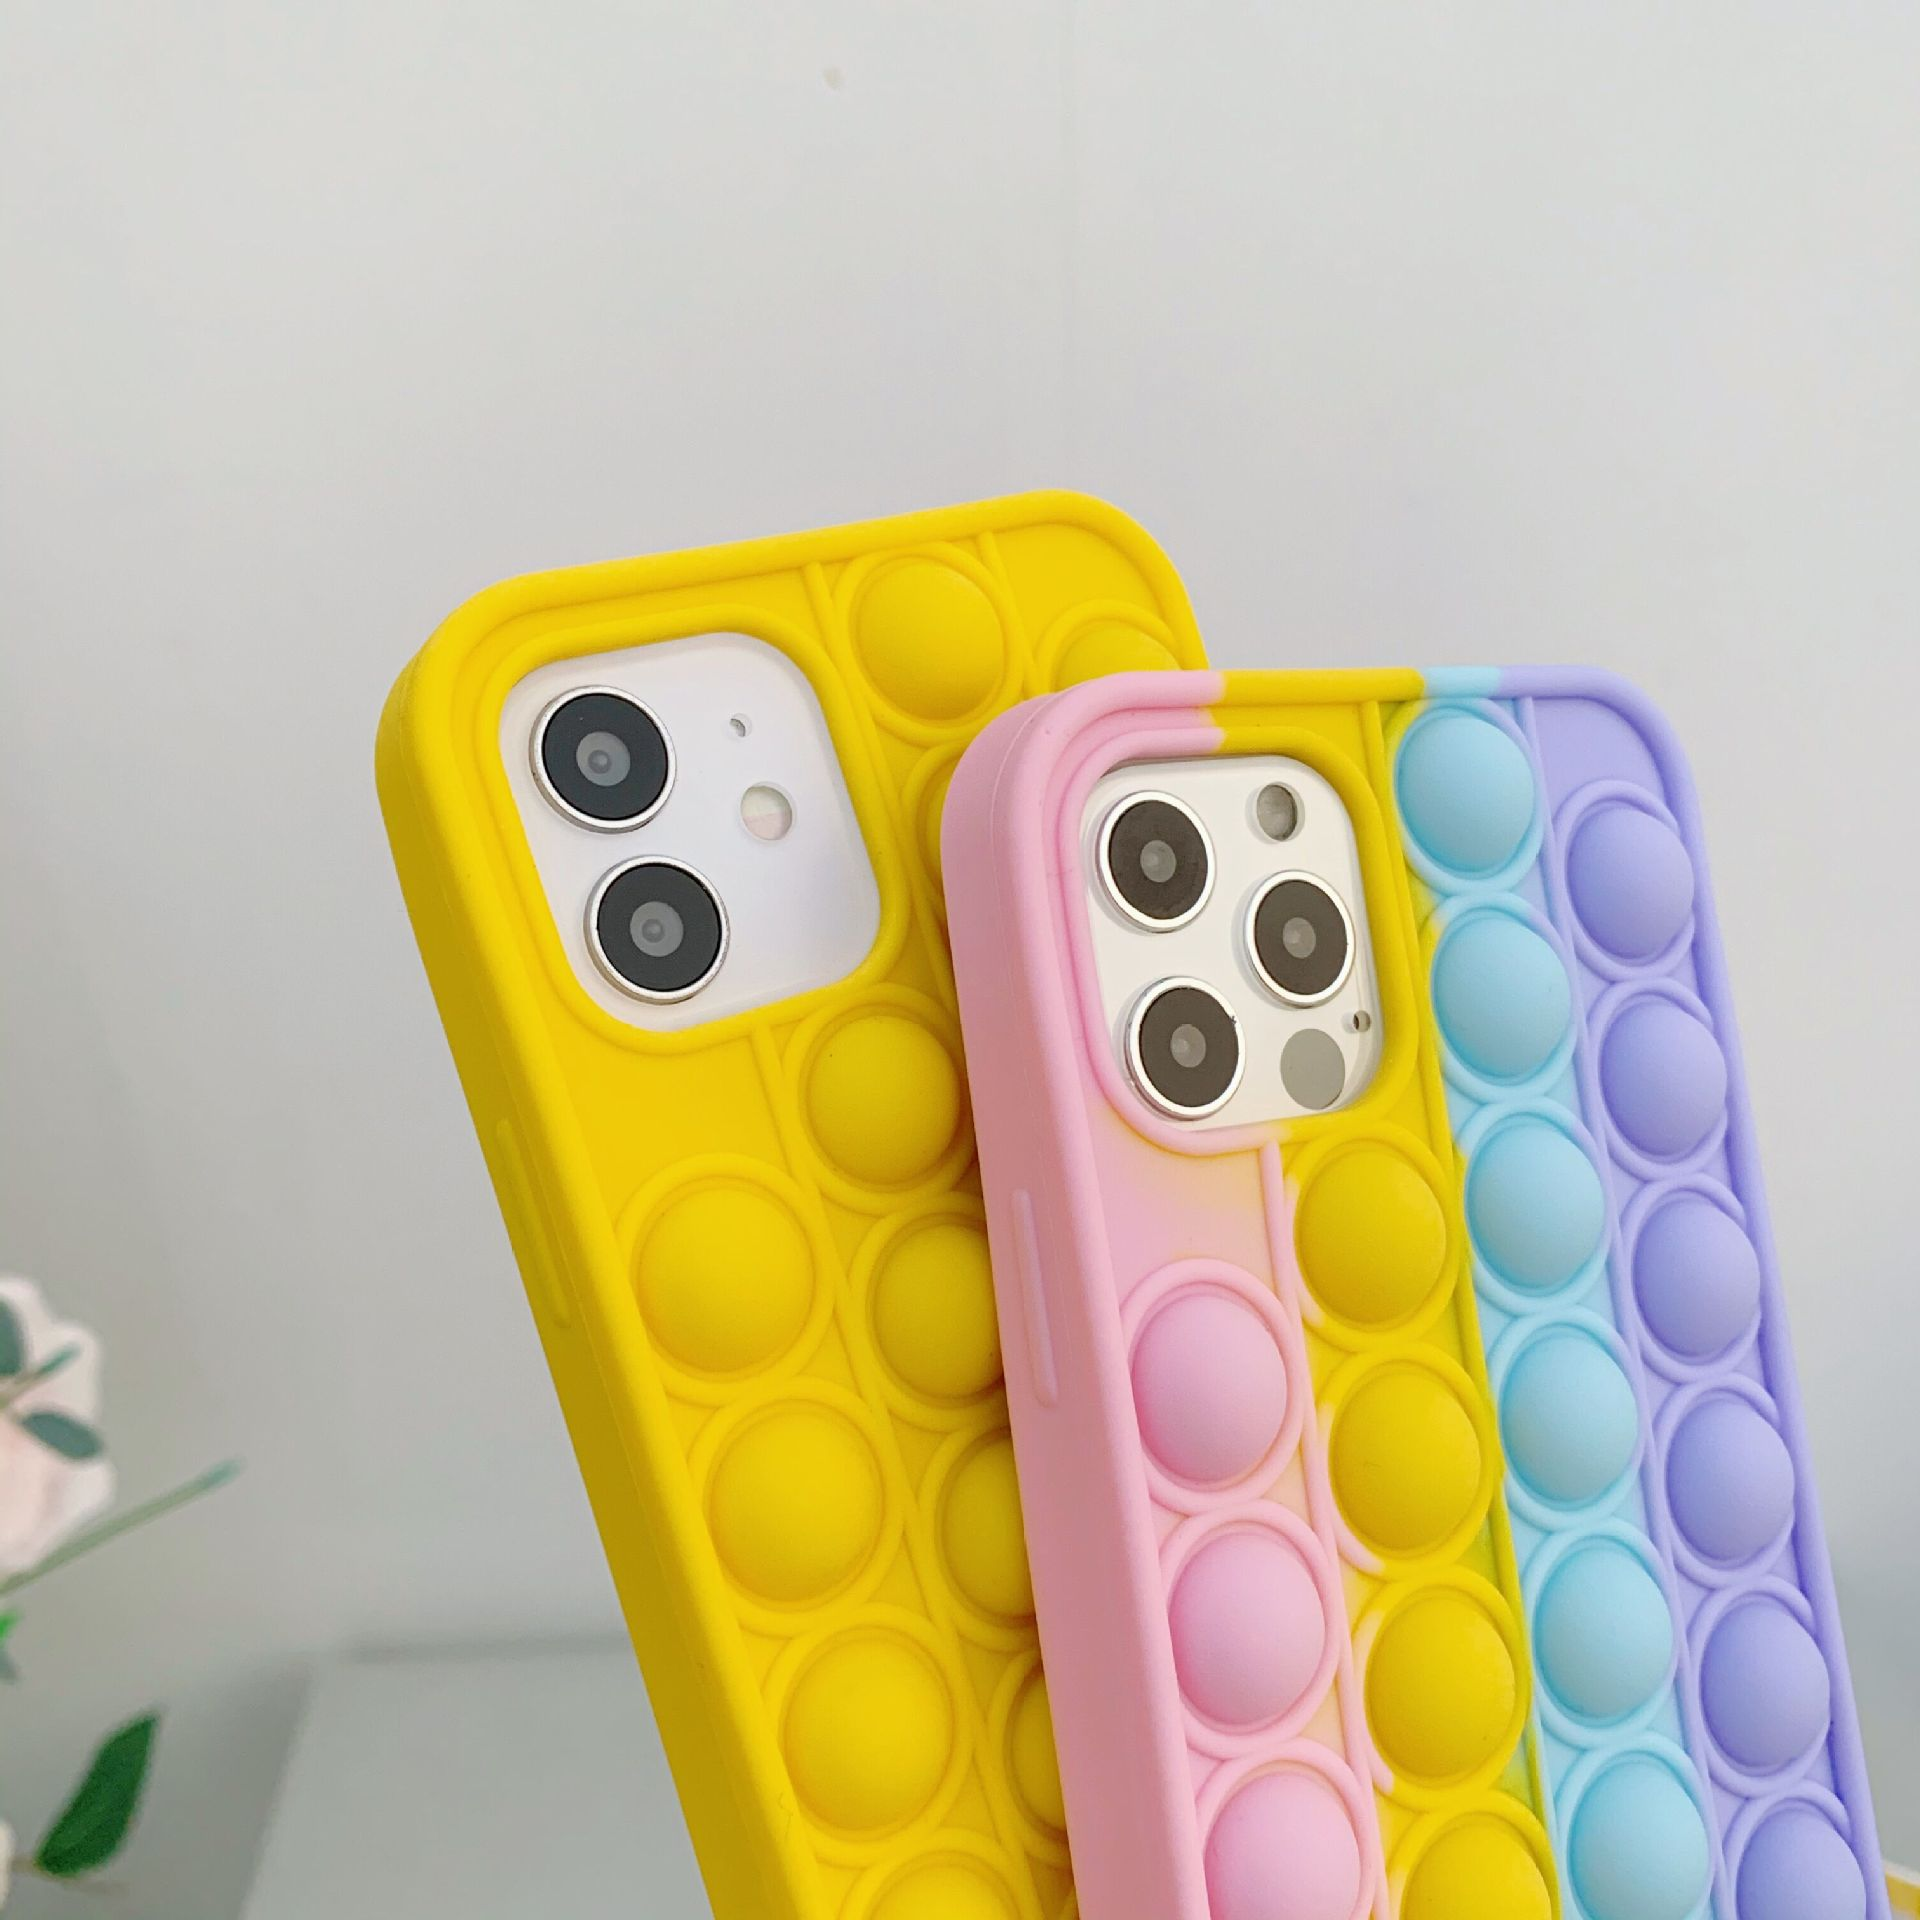 Relive Stress Pop Fidget Toys Push It Bubble Silicone Phone Case For Iphone 6 6s 7 8 Plus X XR XS 11 12 Pro Max Soft Cover Gift enlarge